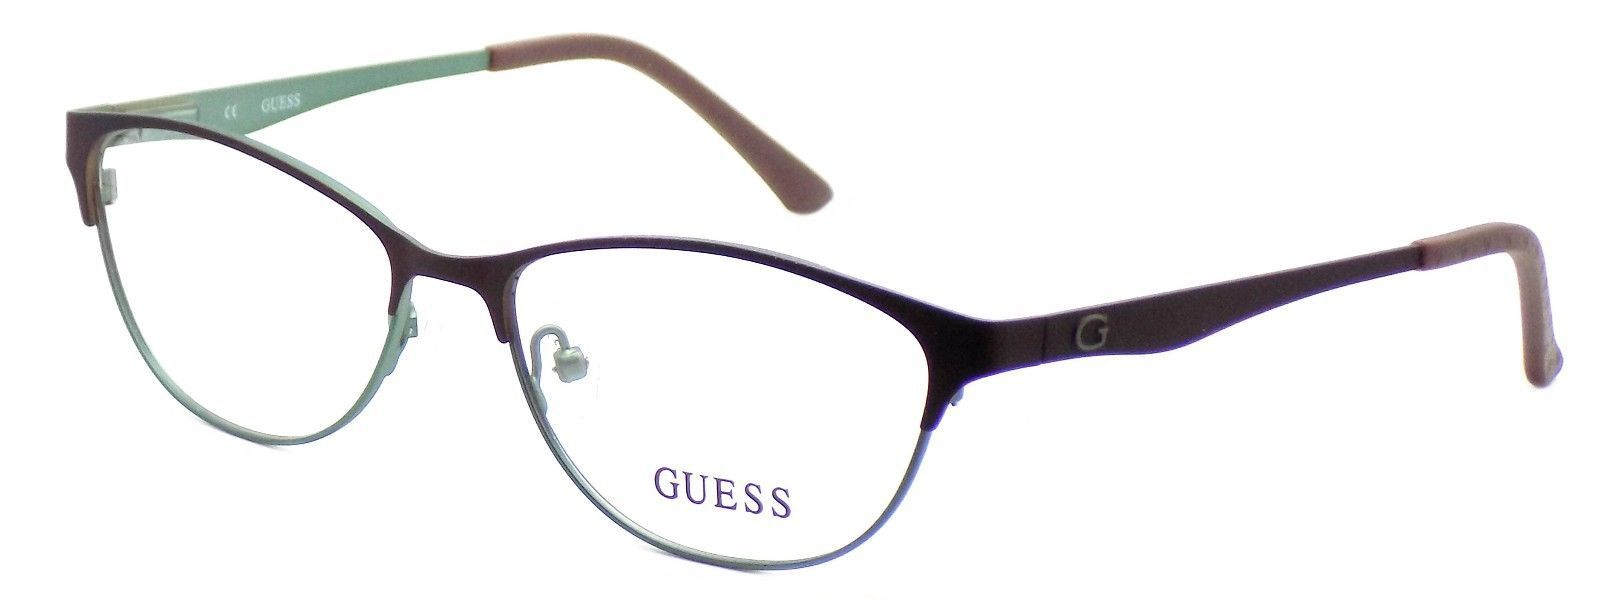 GUESS GU2504 049 Women's Eyeglasses Frames 53-15-135 Satin Brown + CASE